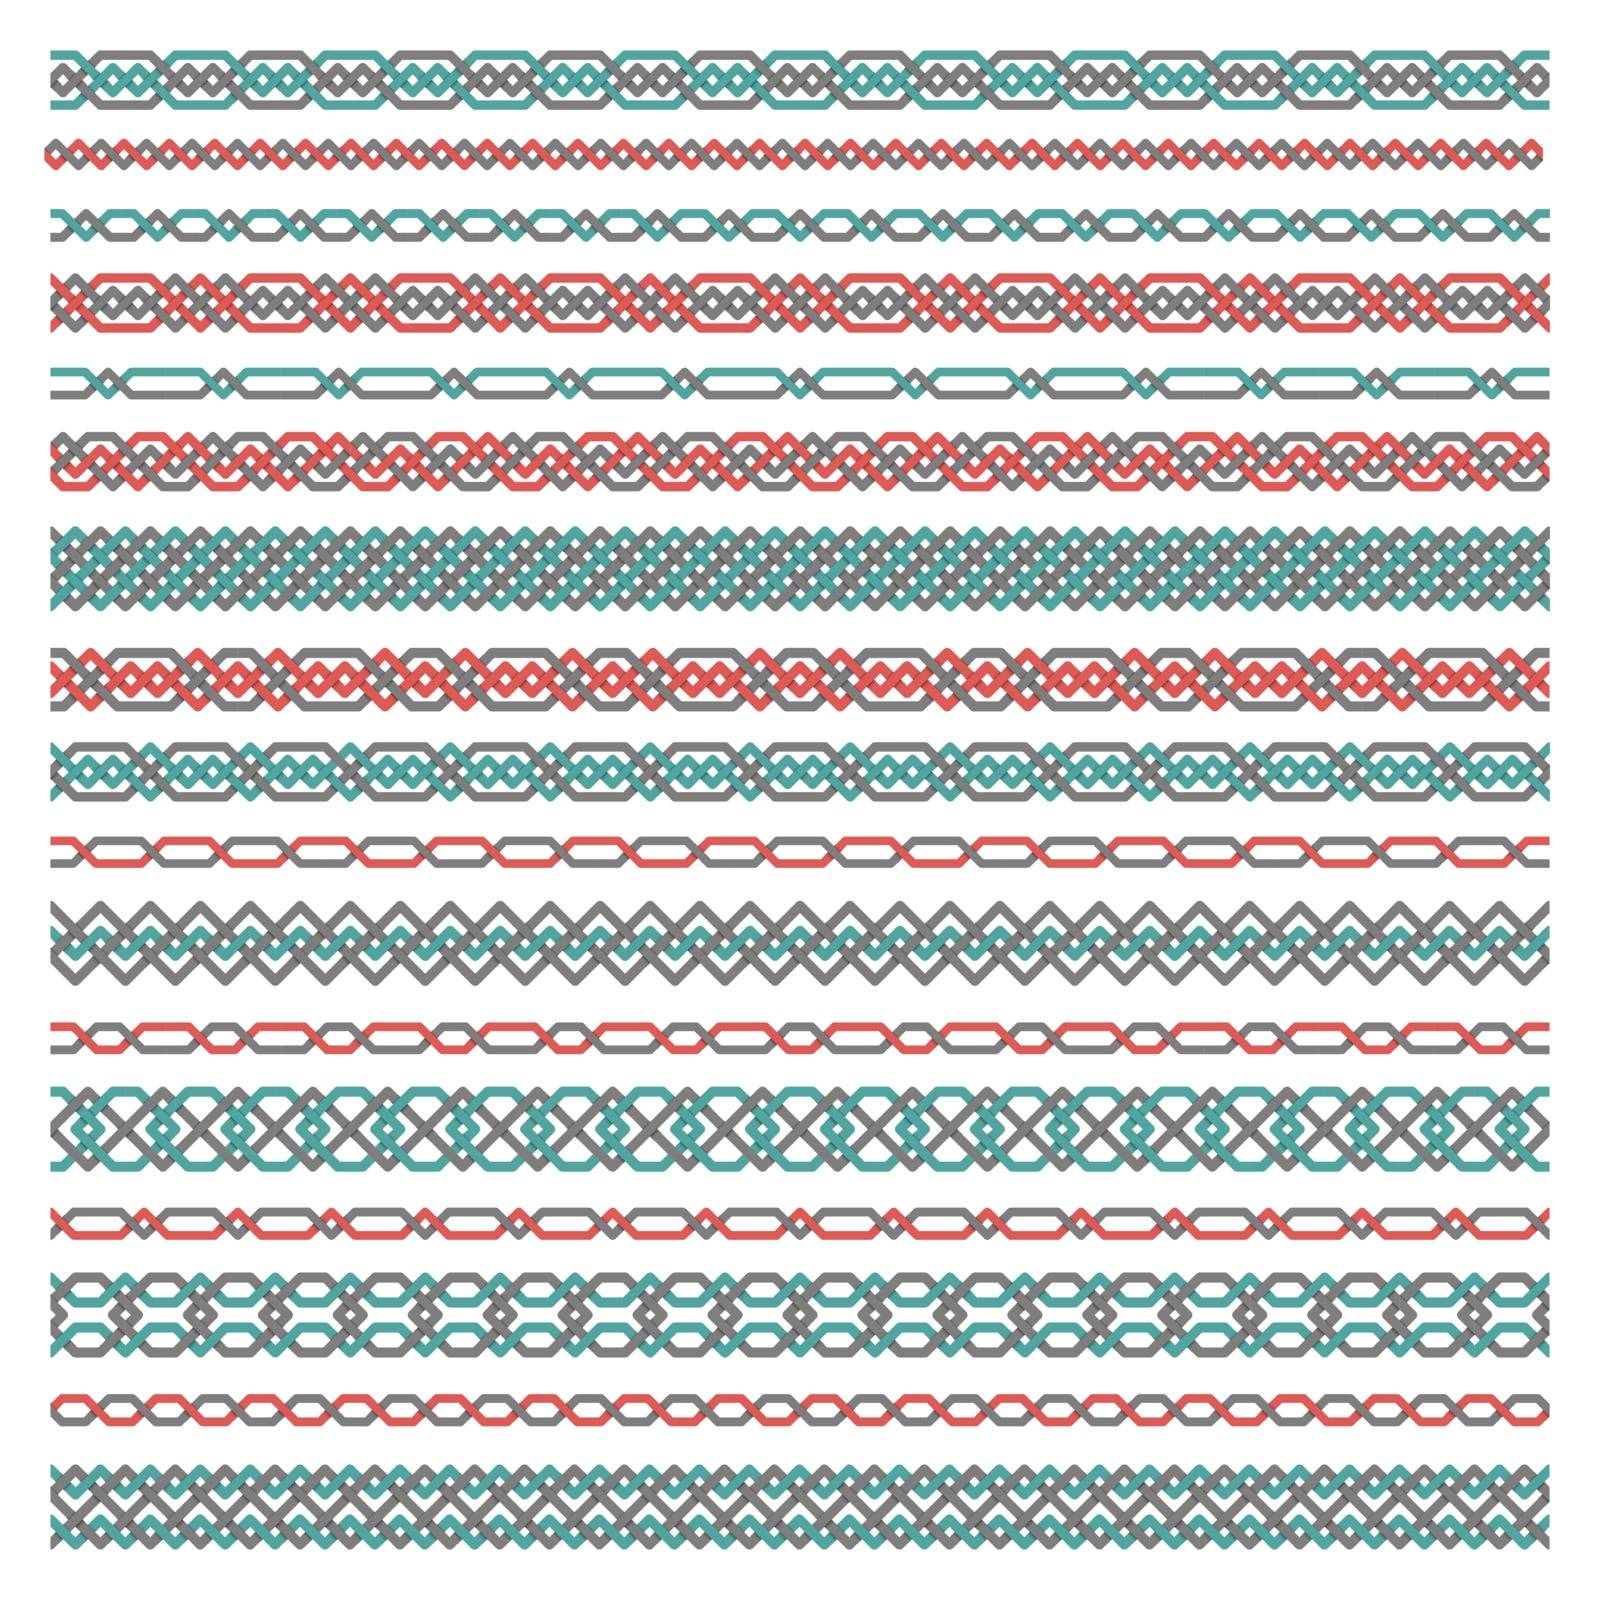 A large set of seamless borders of interwoven tapes